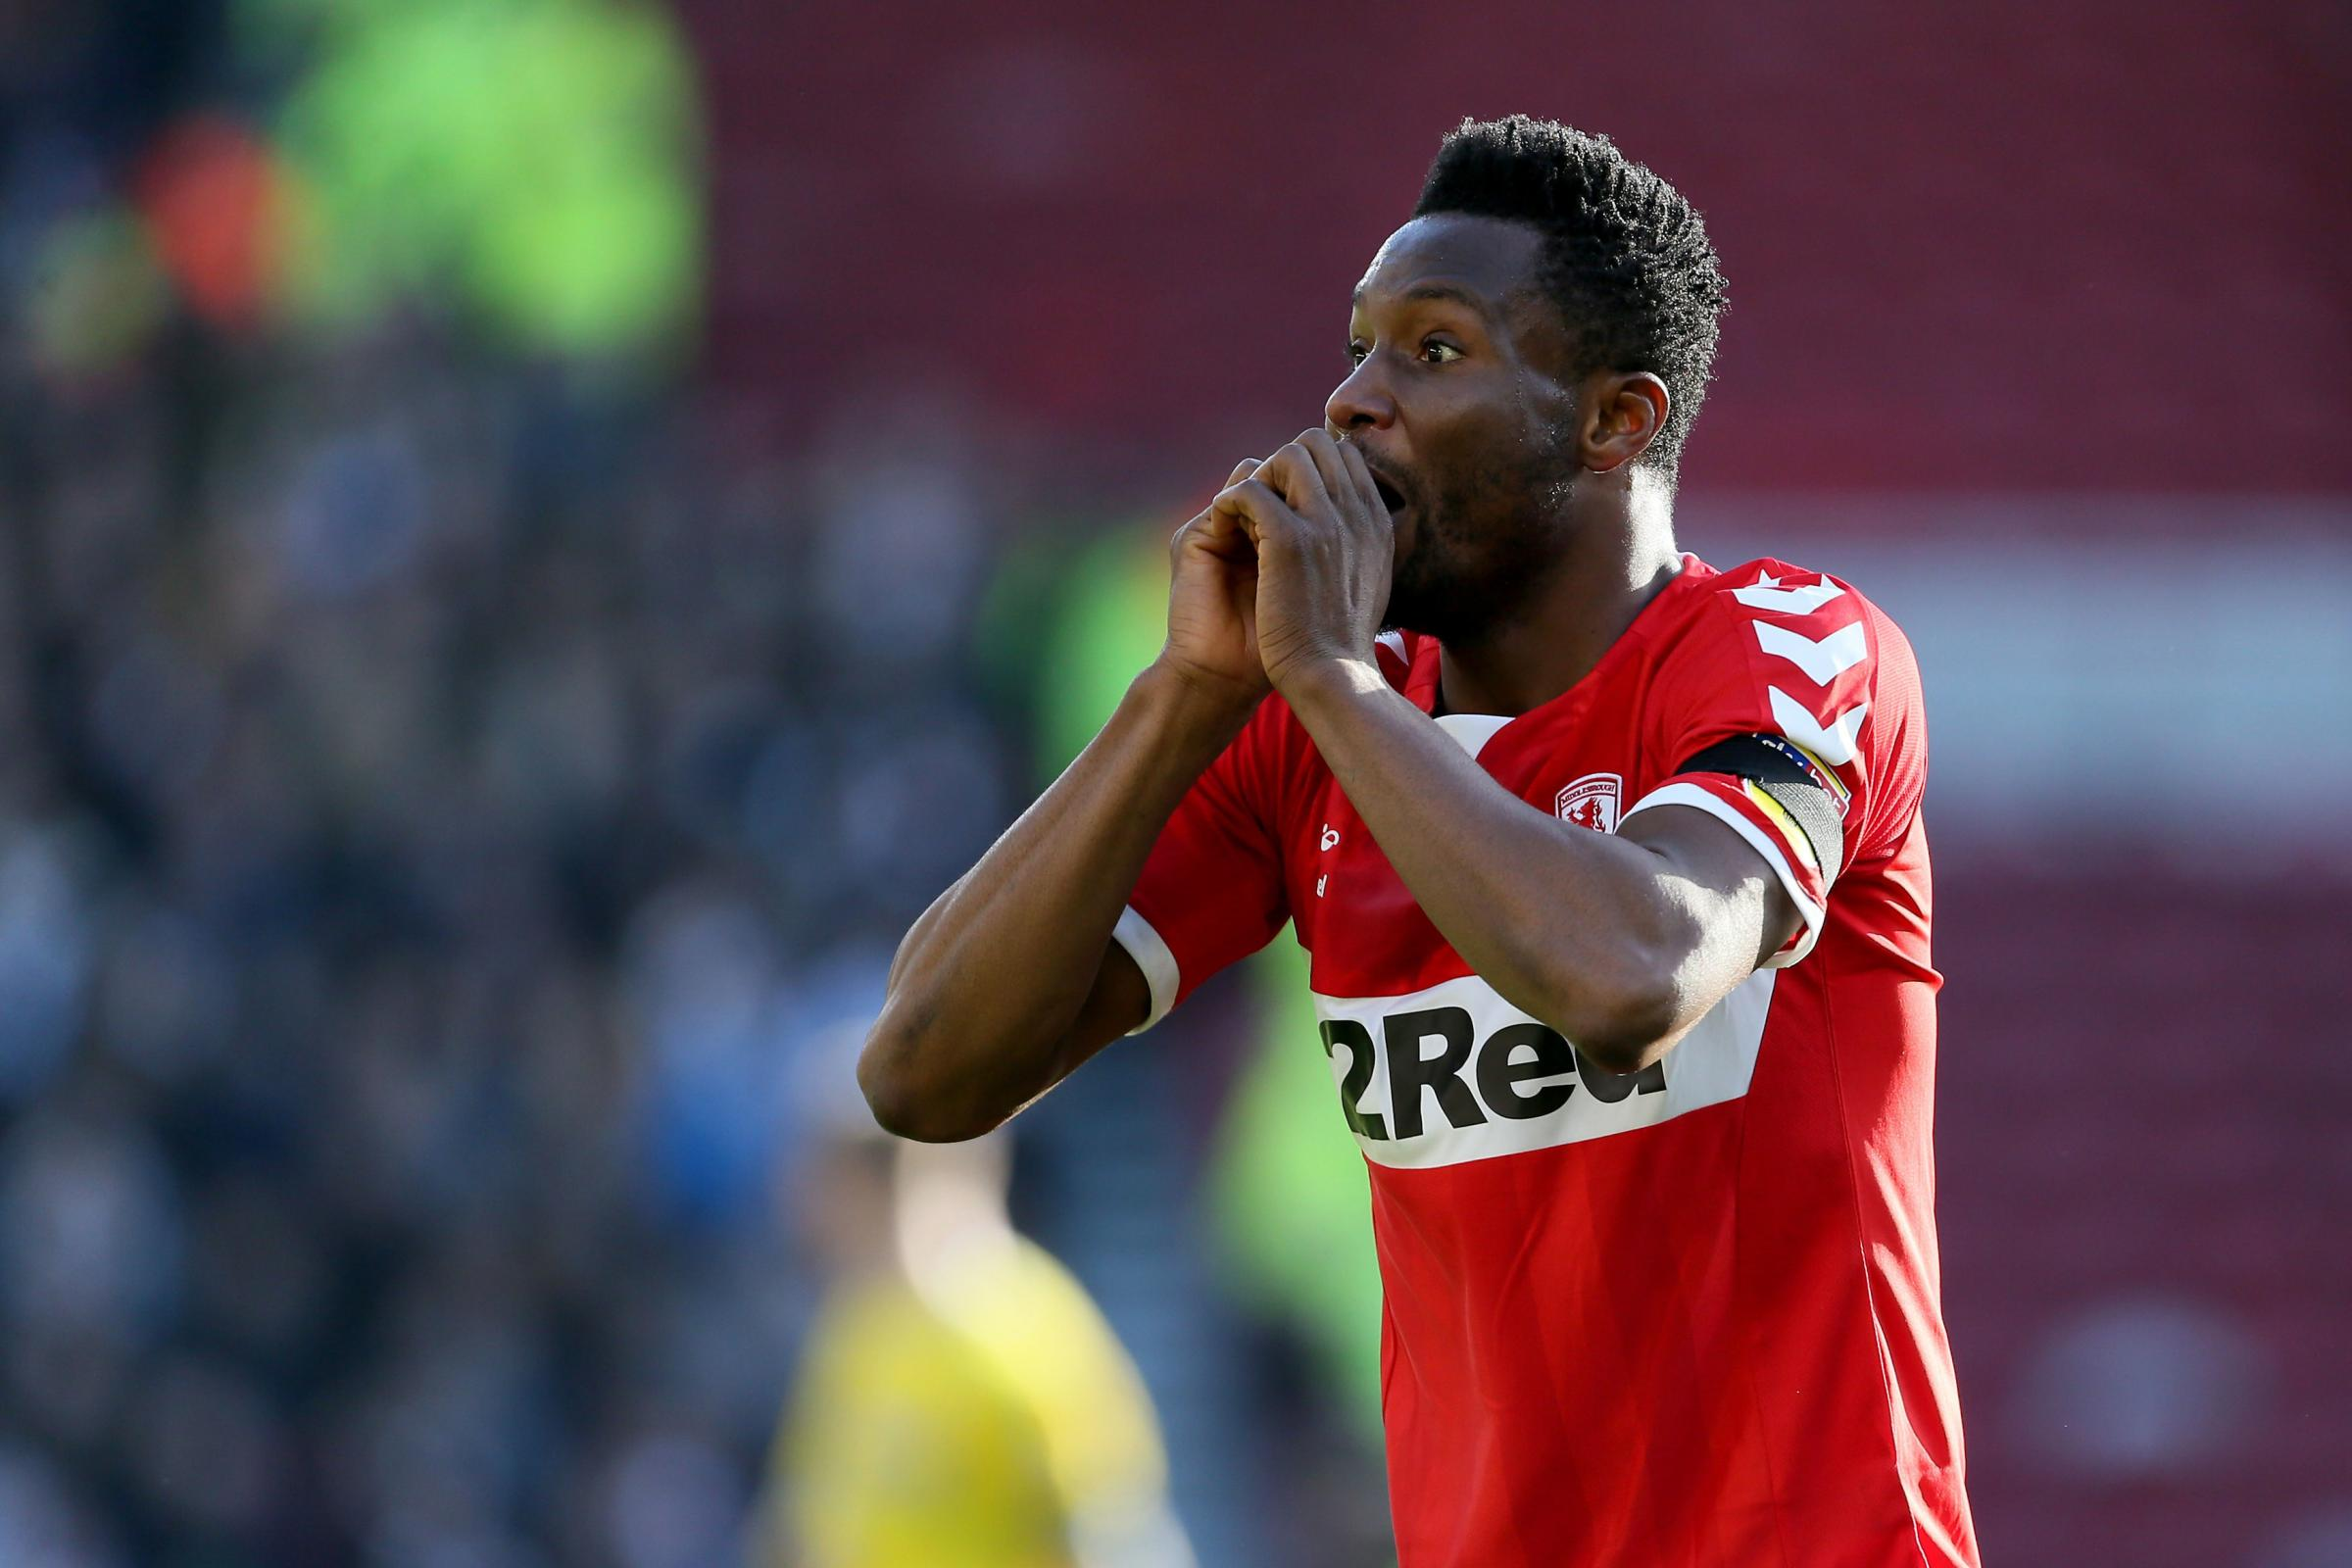 It's time for Boro to take Leeds display forward to achieve promotion